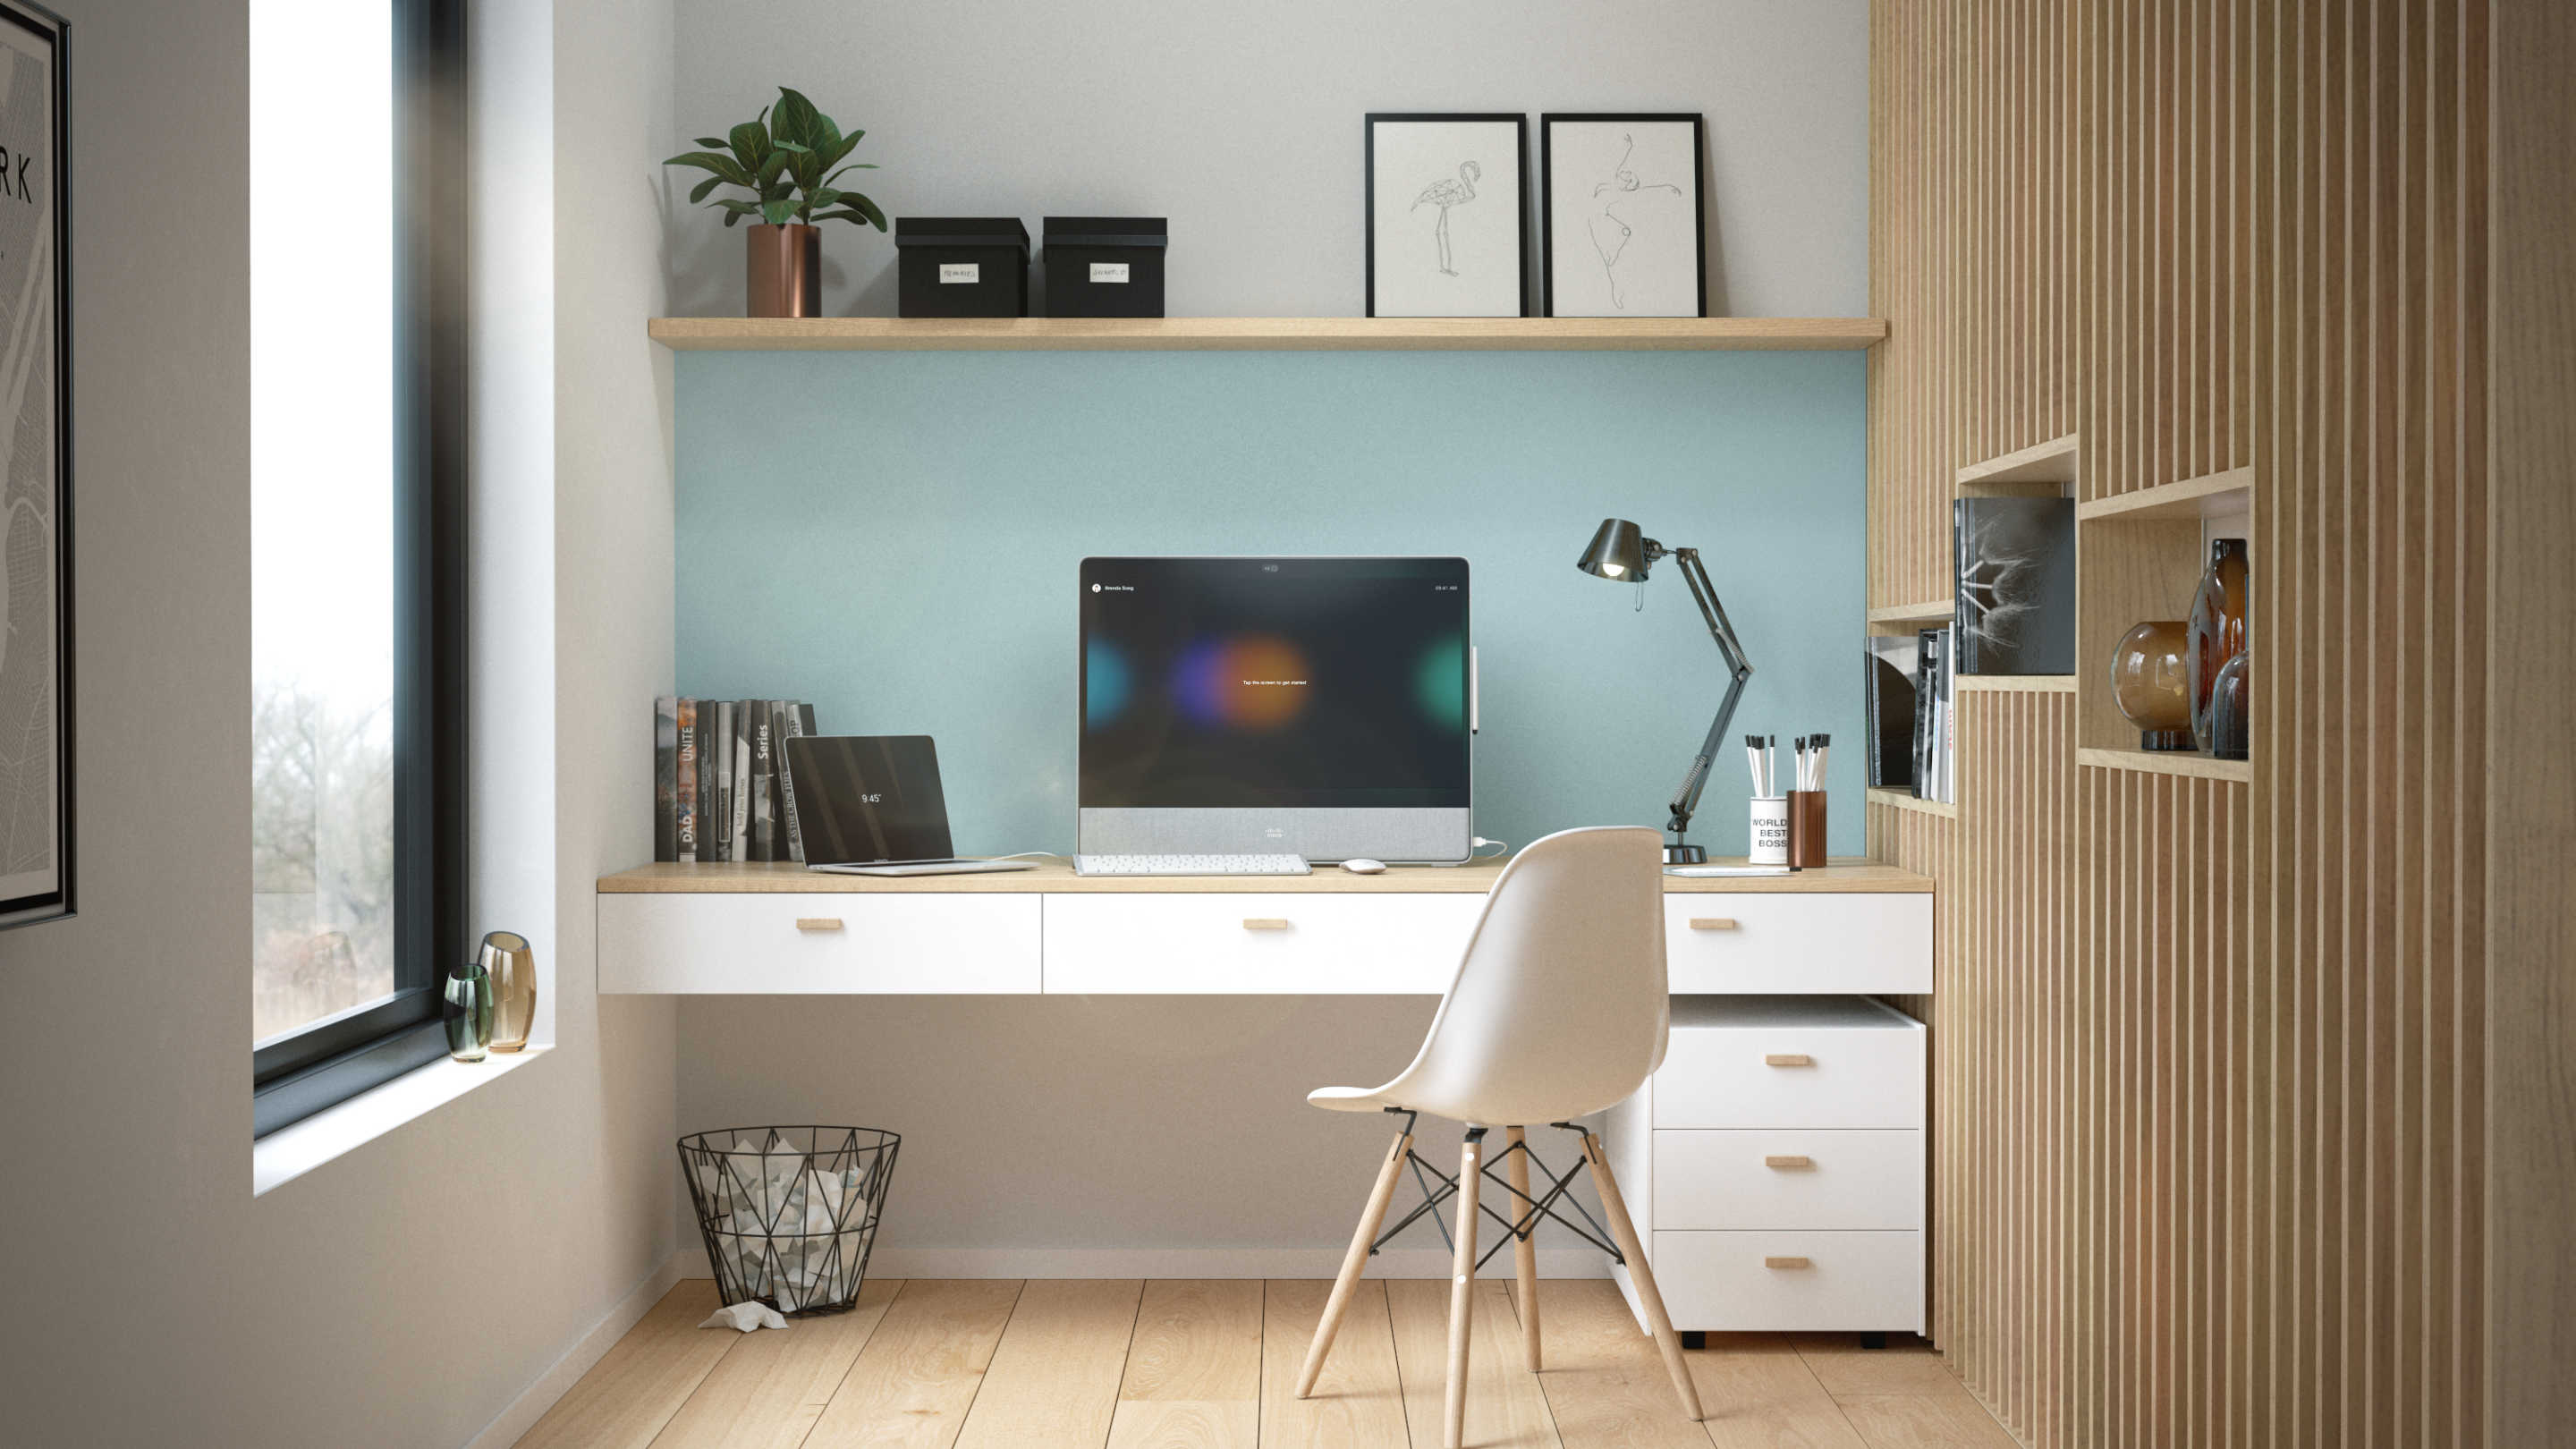 A welcoming personal home office featuring the Cisco Webex Desk Pro personal device.